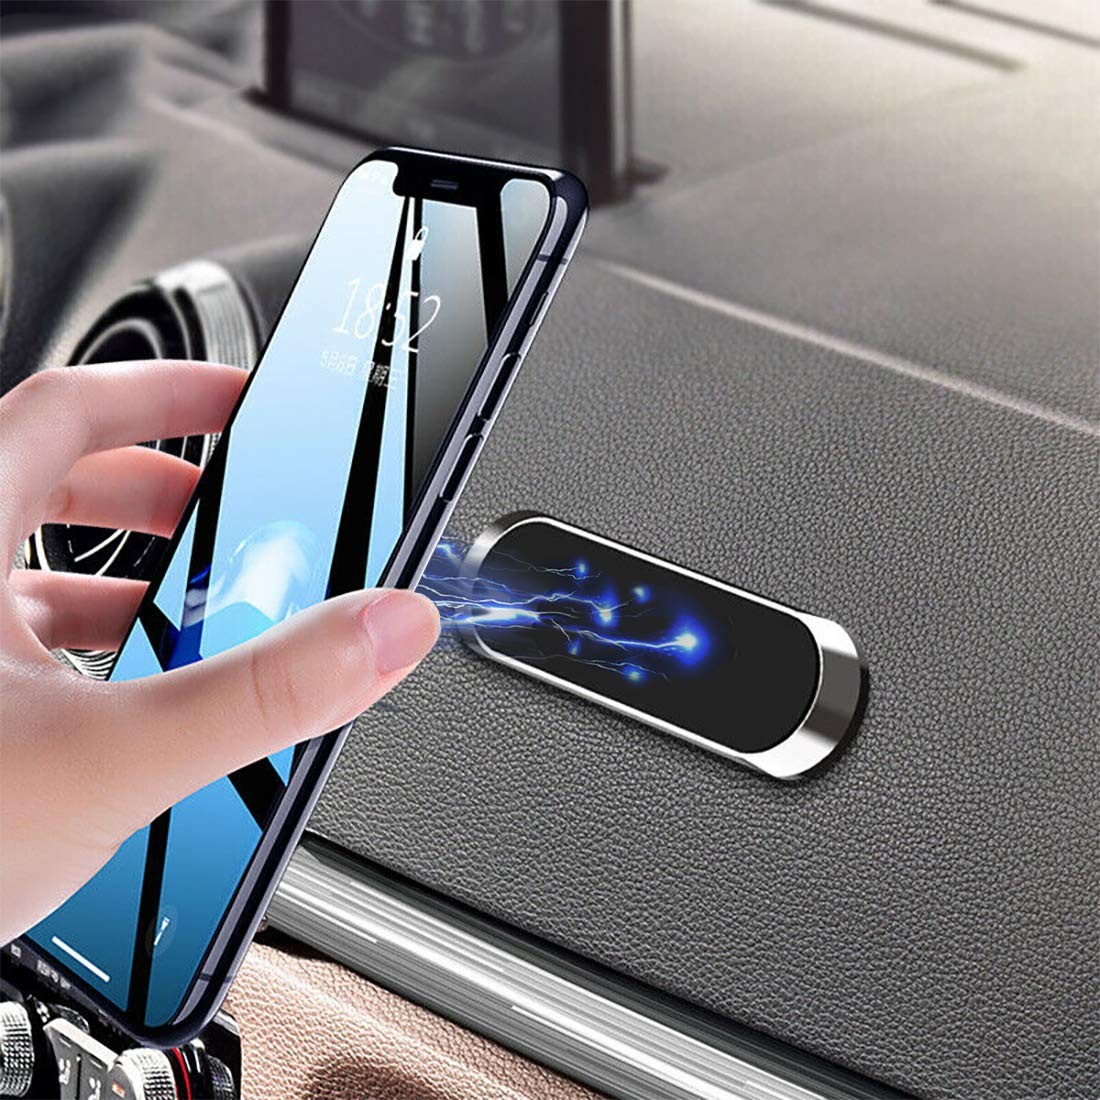 Echo Auto Mount /& Echo Auto 2 Pack LinkIdea Magnetic Car Phone Mount Add Alexa to Your Car The Magnet Cell Phone Holder for  Echo Auto Universal Dashboard Car Magnetic Mount Accessories